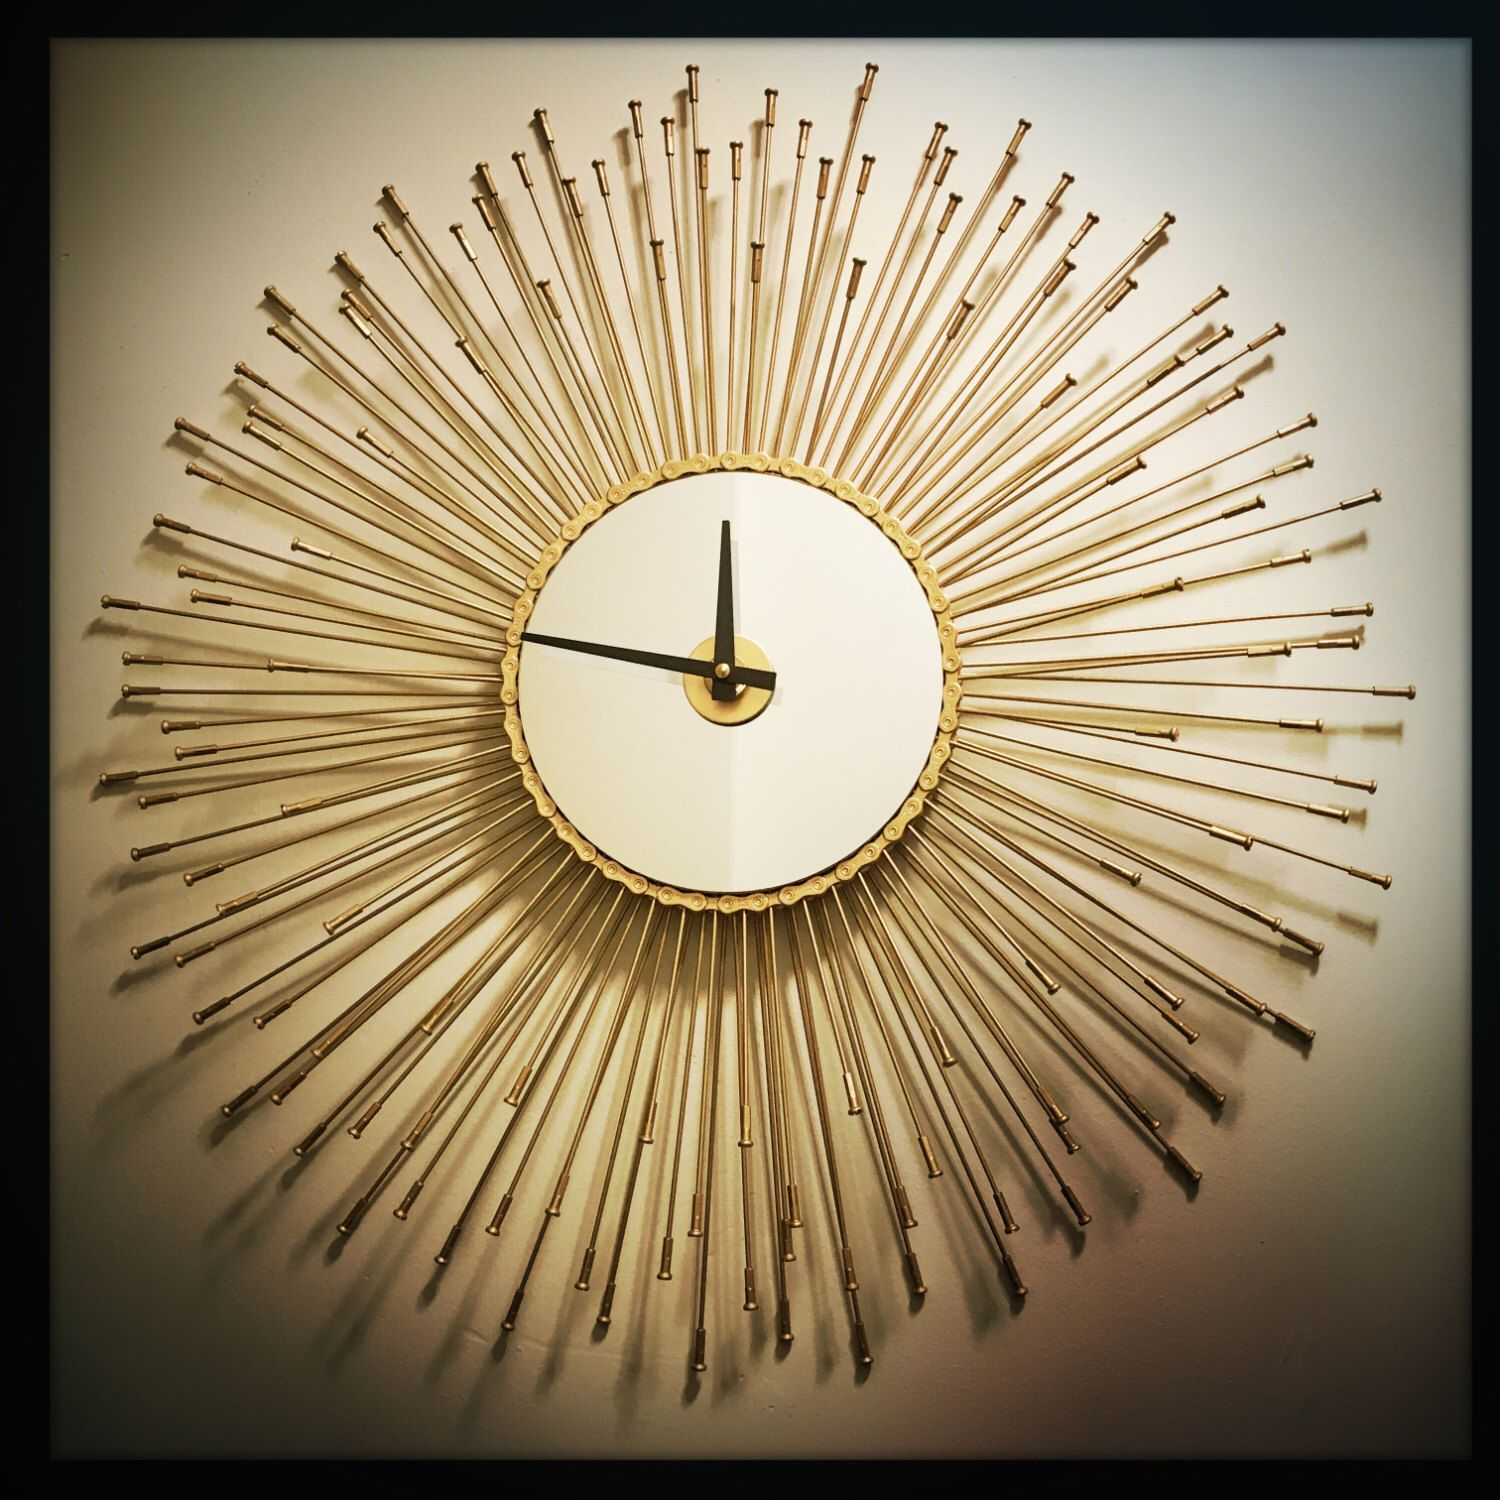 Sunburst Bike Clock Mid Century Wall Clock Boho Gift For Her Unique Wedding Gift Idea Oversized Wall Clock Industrial H Upcycling Einrichtung Just For You